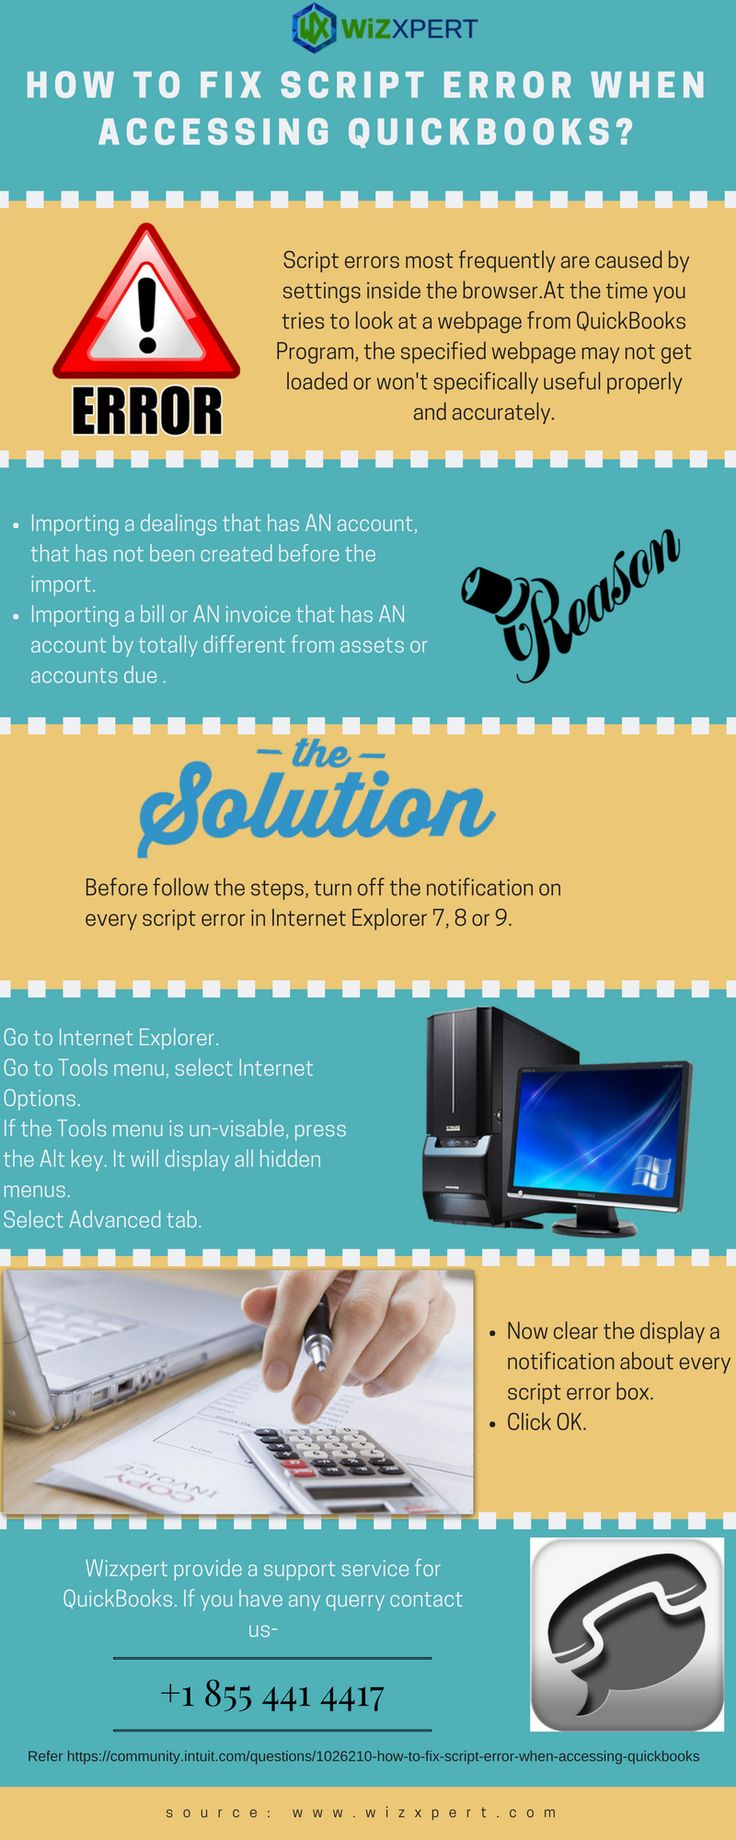 Script Errors Most Frequently Are Caused By Settings Inside The Browser In  Thisgraphic,